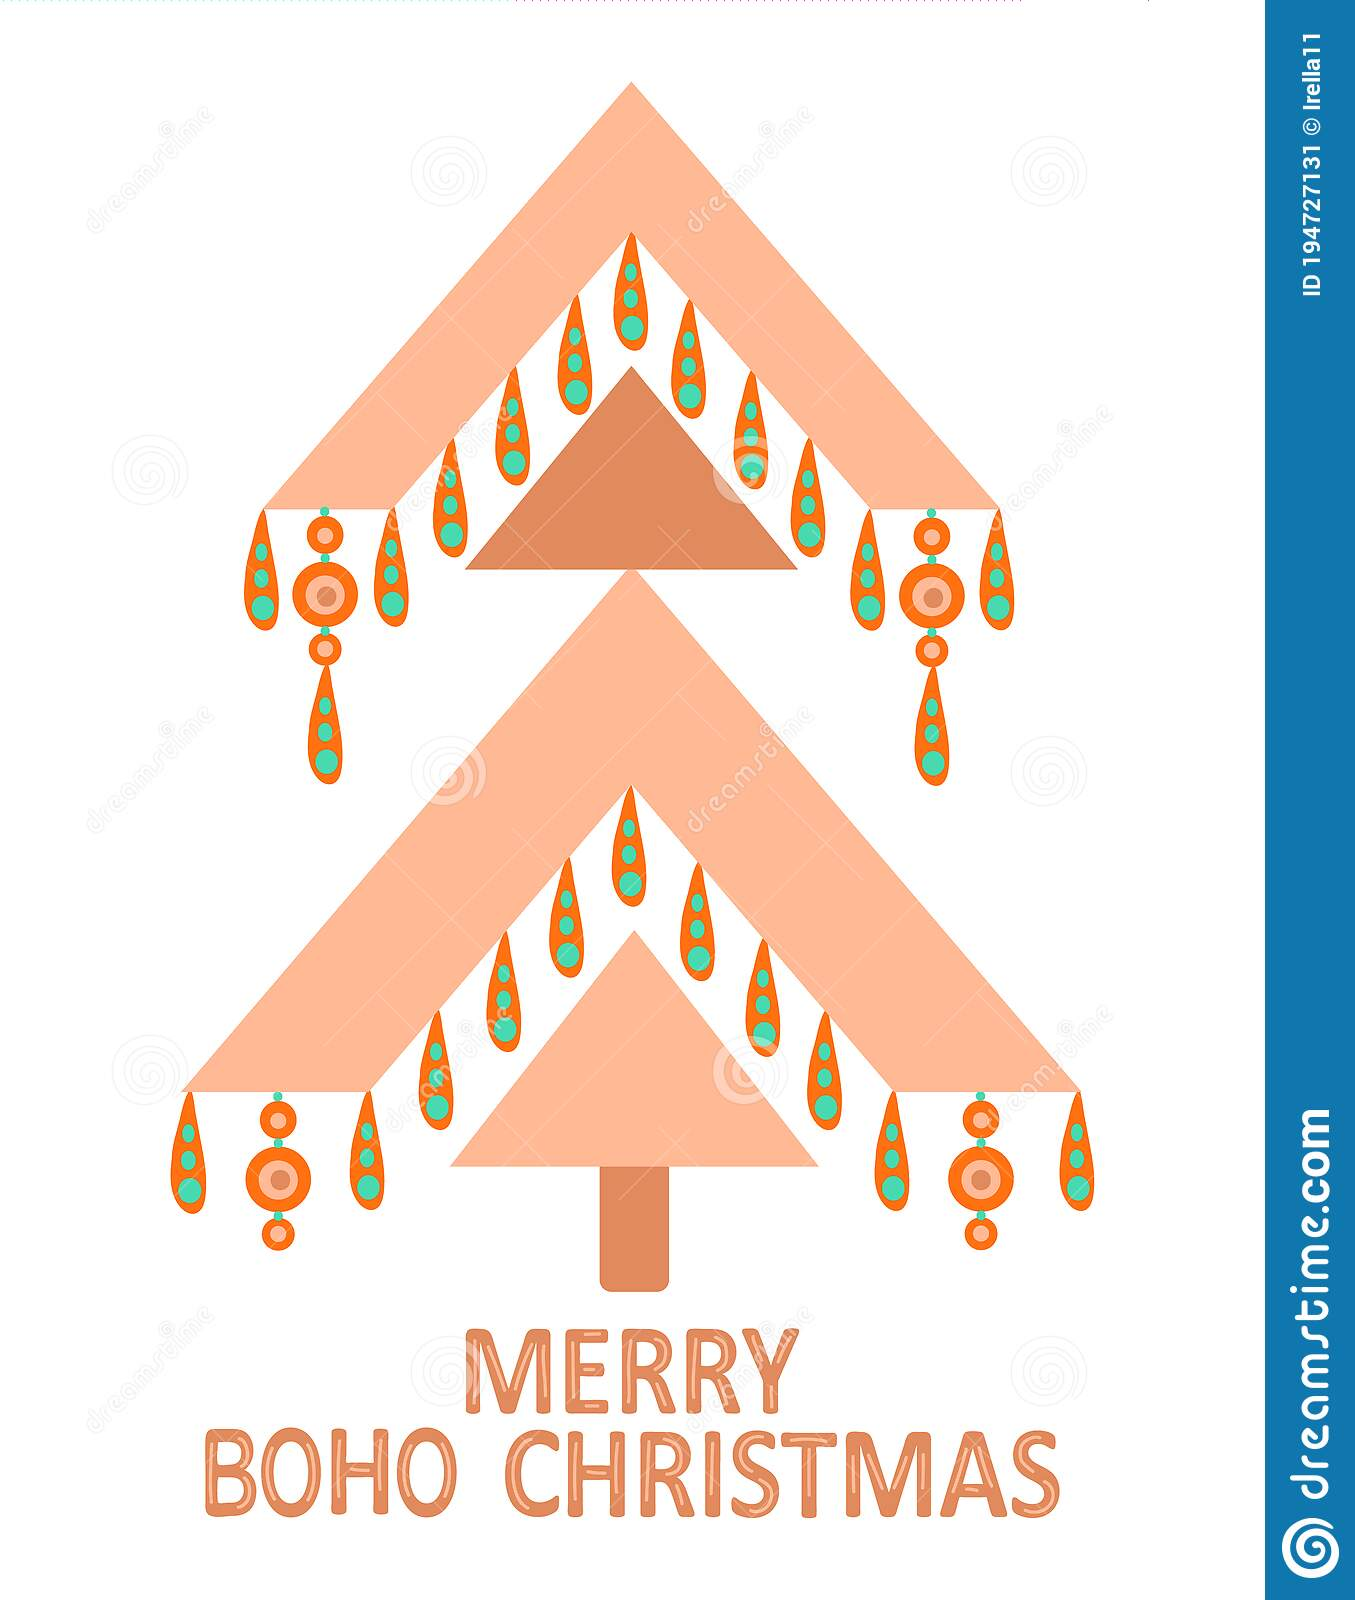 Geometric Christmas Tree With Ethnic Ornaments In Bohemian Style Isolated On White Background Winter Holidays Rustic Decor Stock Vector Illustration Of Color Home 194727131